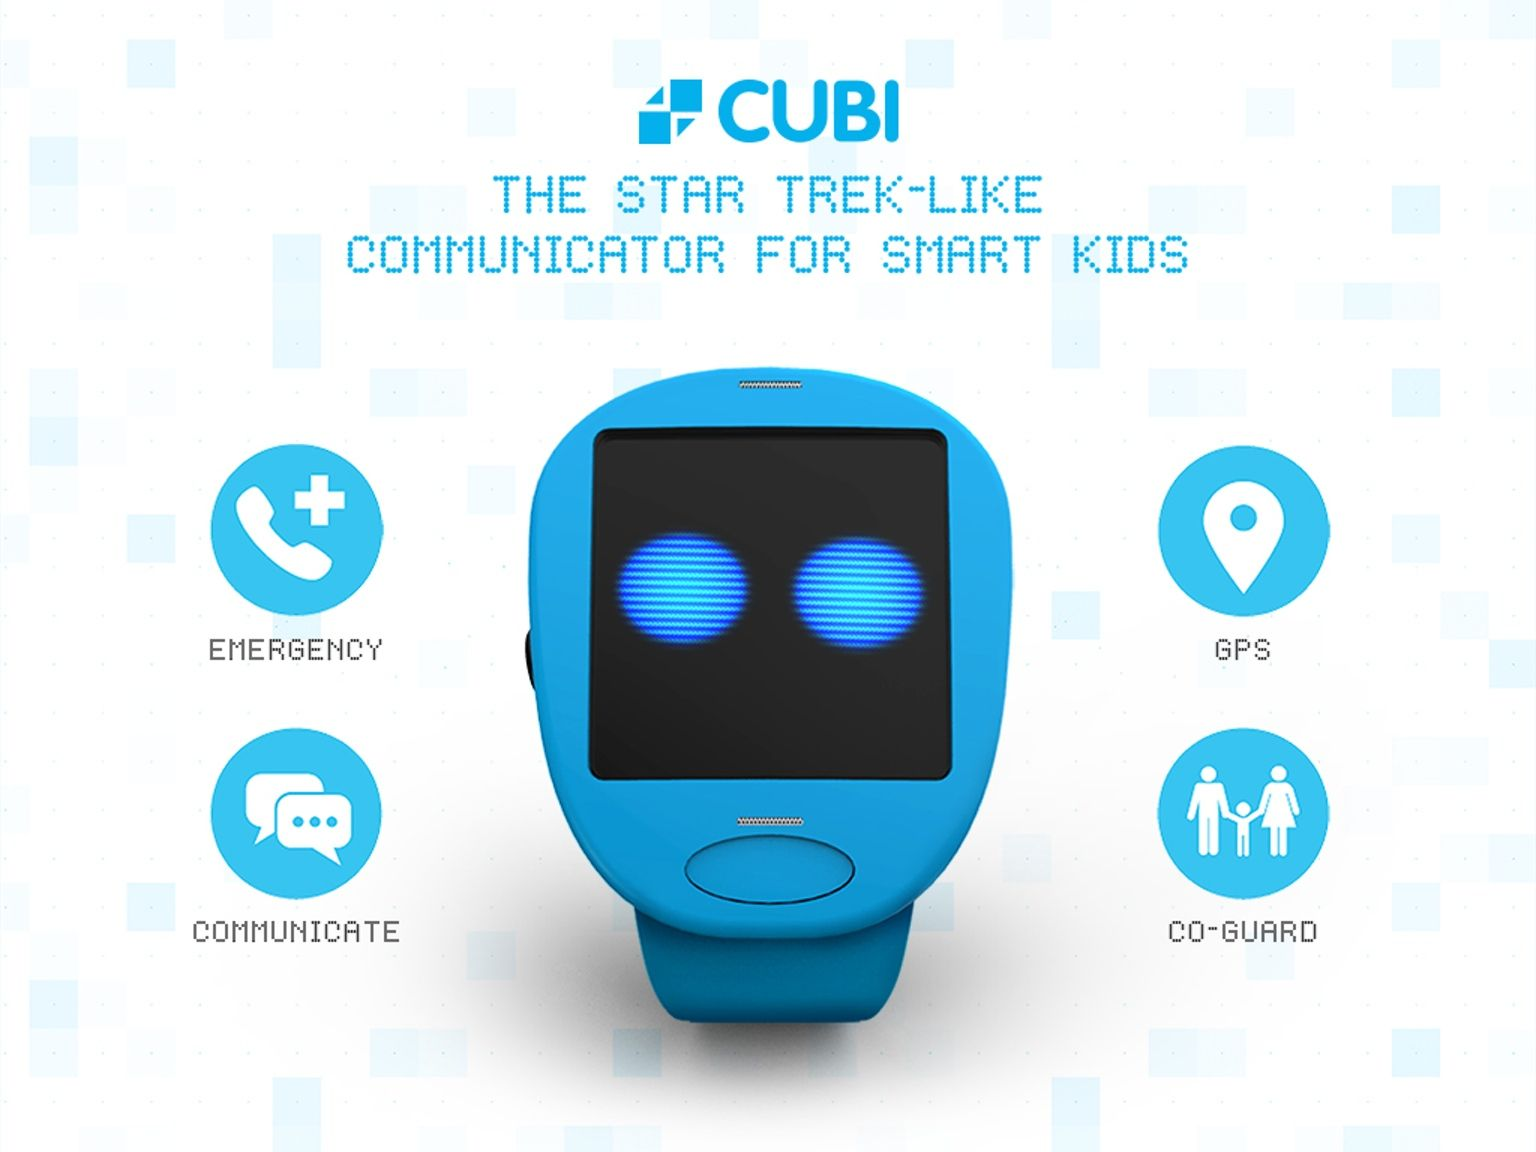 To build-up & strengthen the connection within family. A Smartwatch that has with Voice messages, GPS, Instant Emergency Alert and more